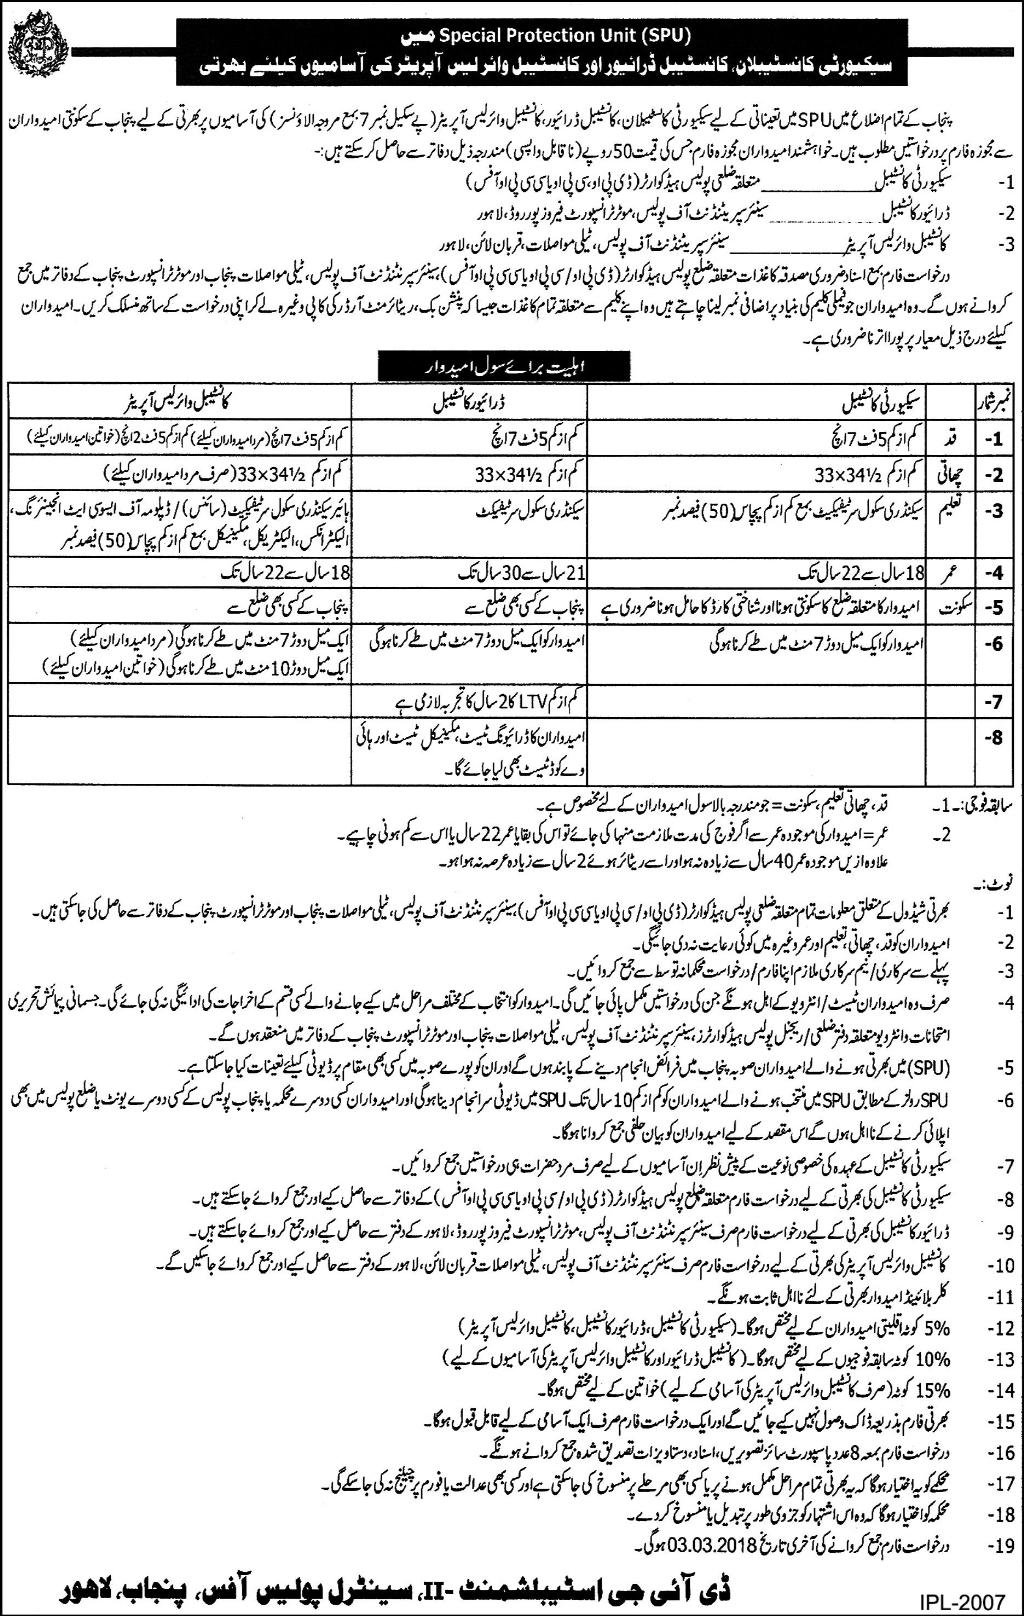 Punjab Police SPU Jobs 2018 Special Protection Unit